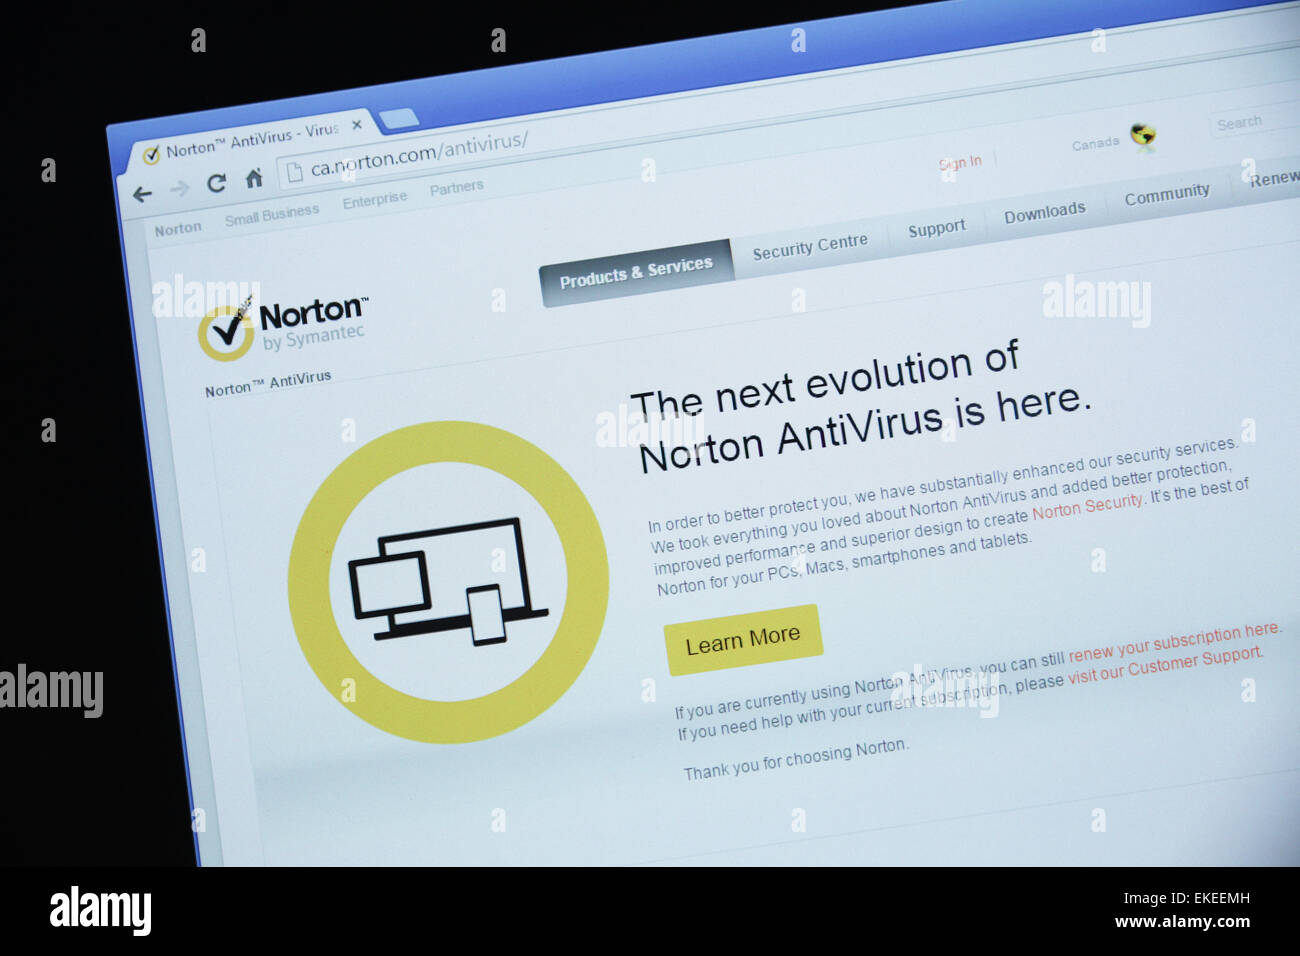 norton antivirus - Stock Image